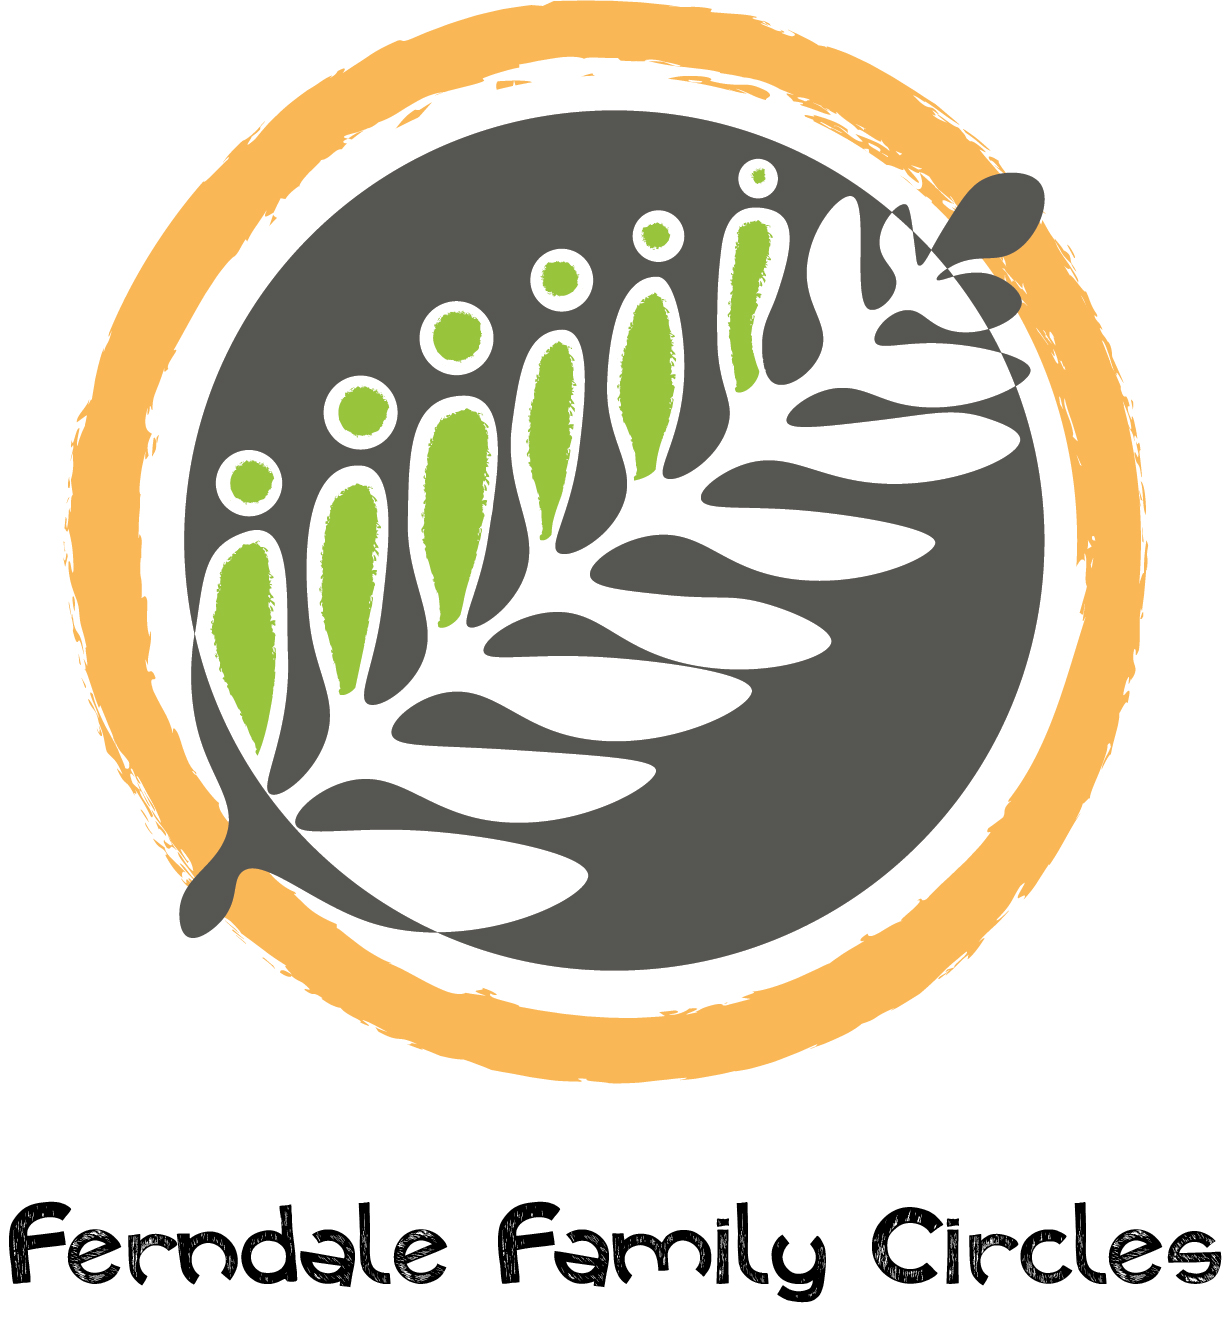 Ferndale Family Circles